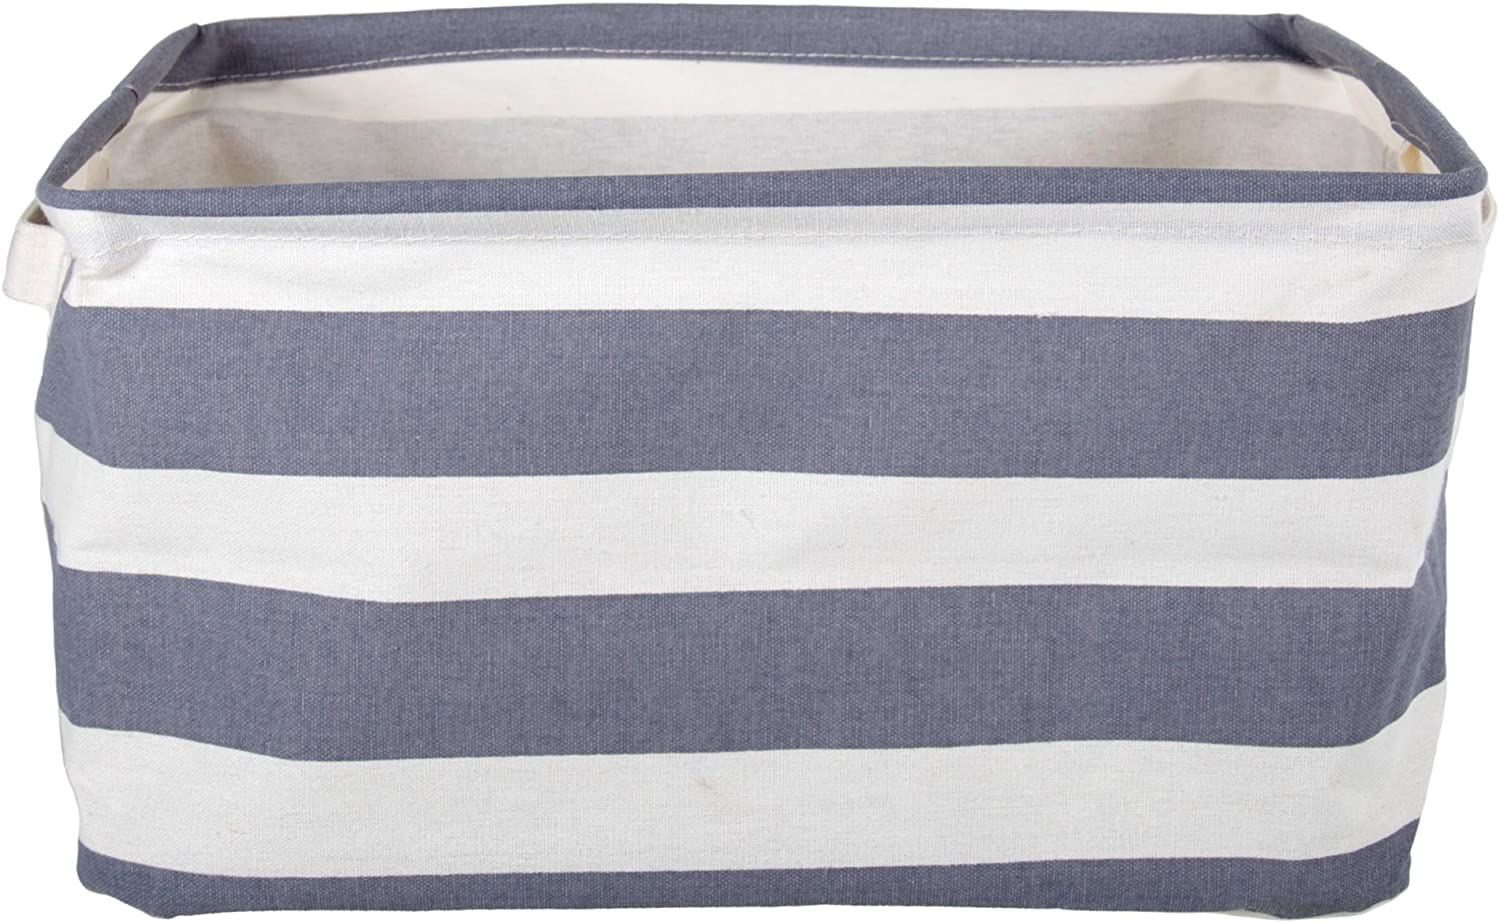 12.25 x 10 x 7 CTG Striped Canvas Collapsible Light-Weight Storage Bin for Office or Home with Lid Blue